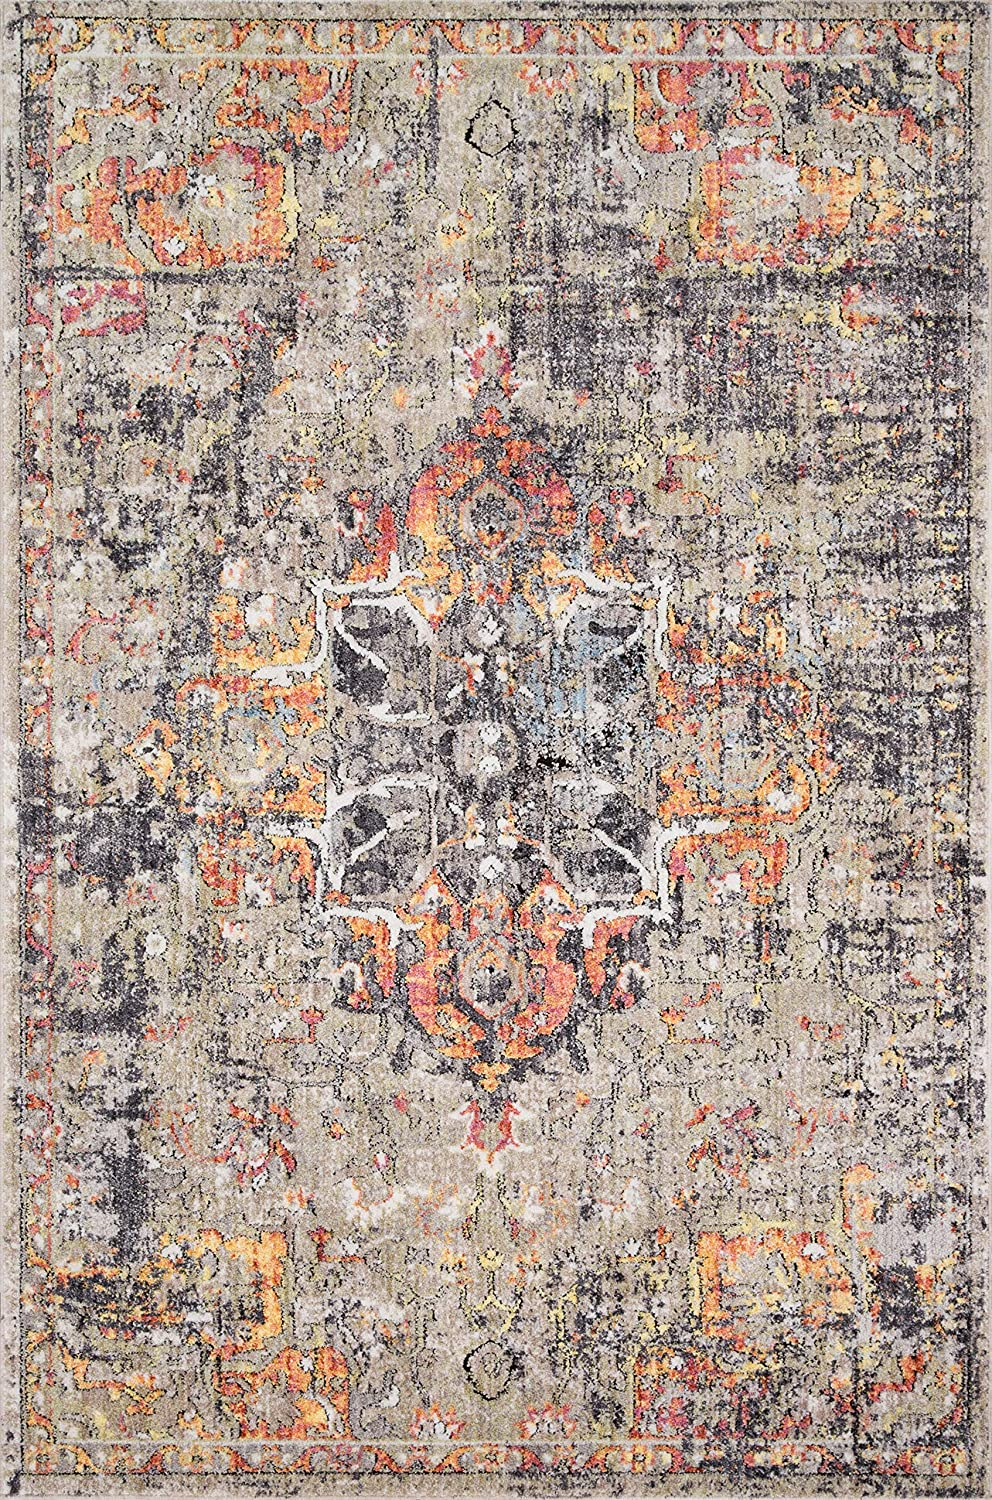 Loloi Medusa Collection High order Area Rug x Sunset Taupe Limited price 2'4